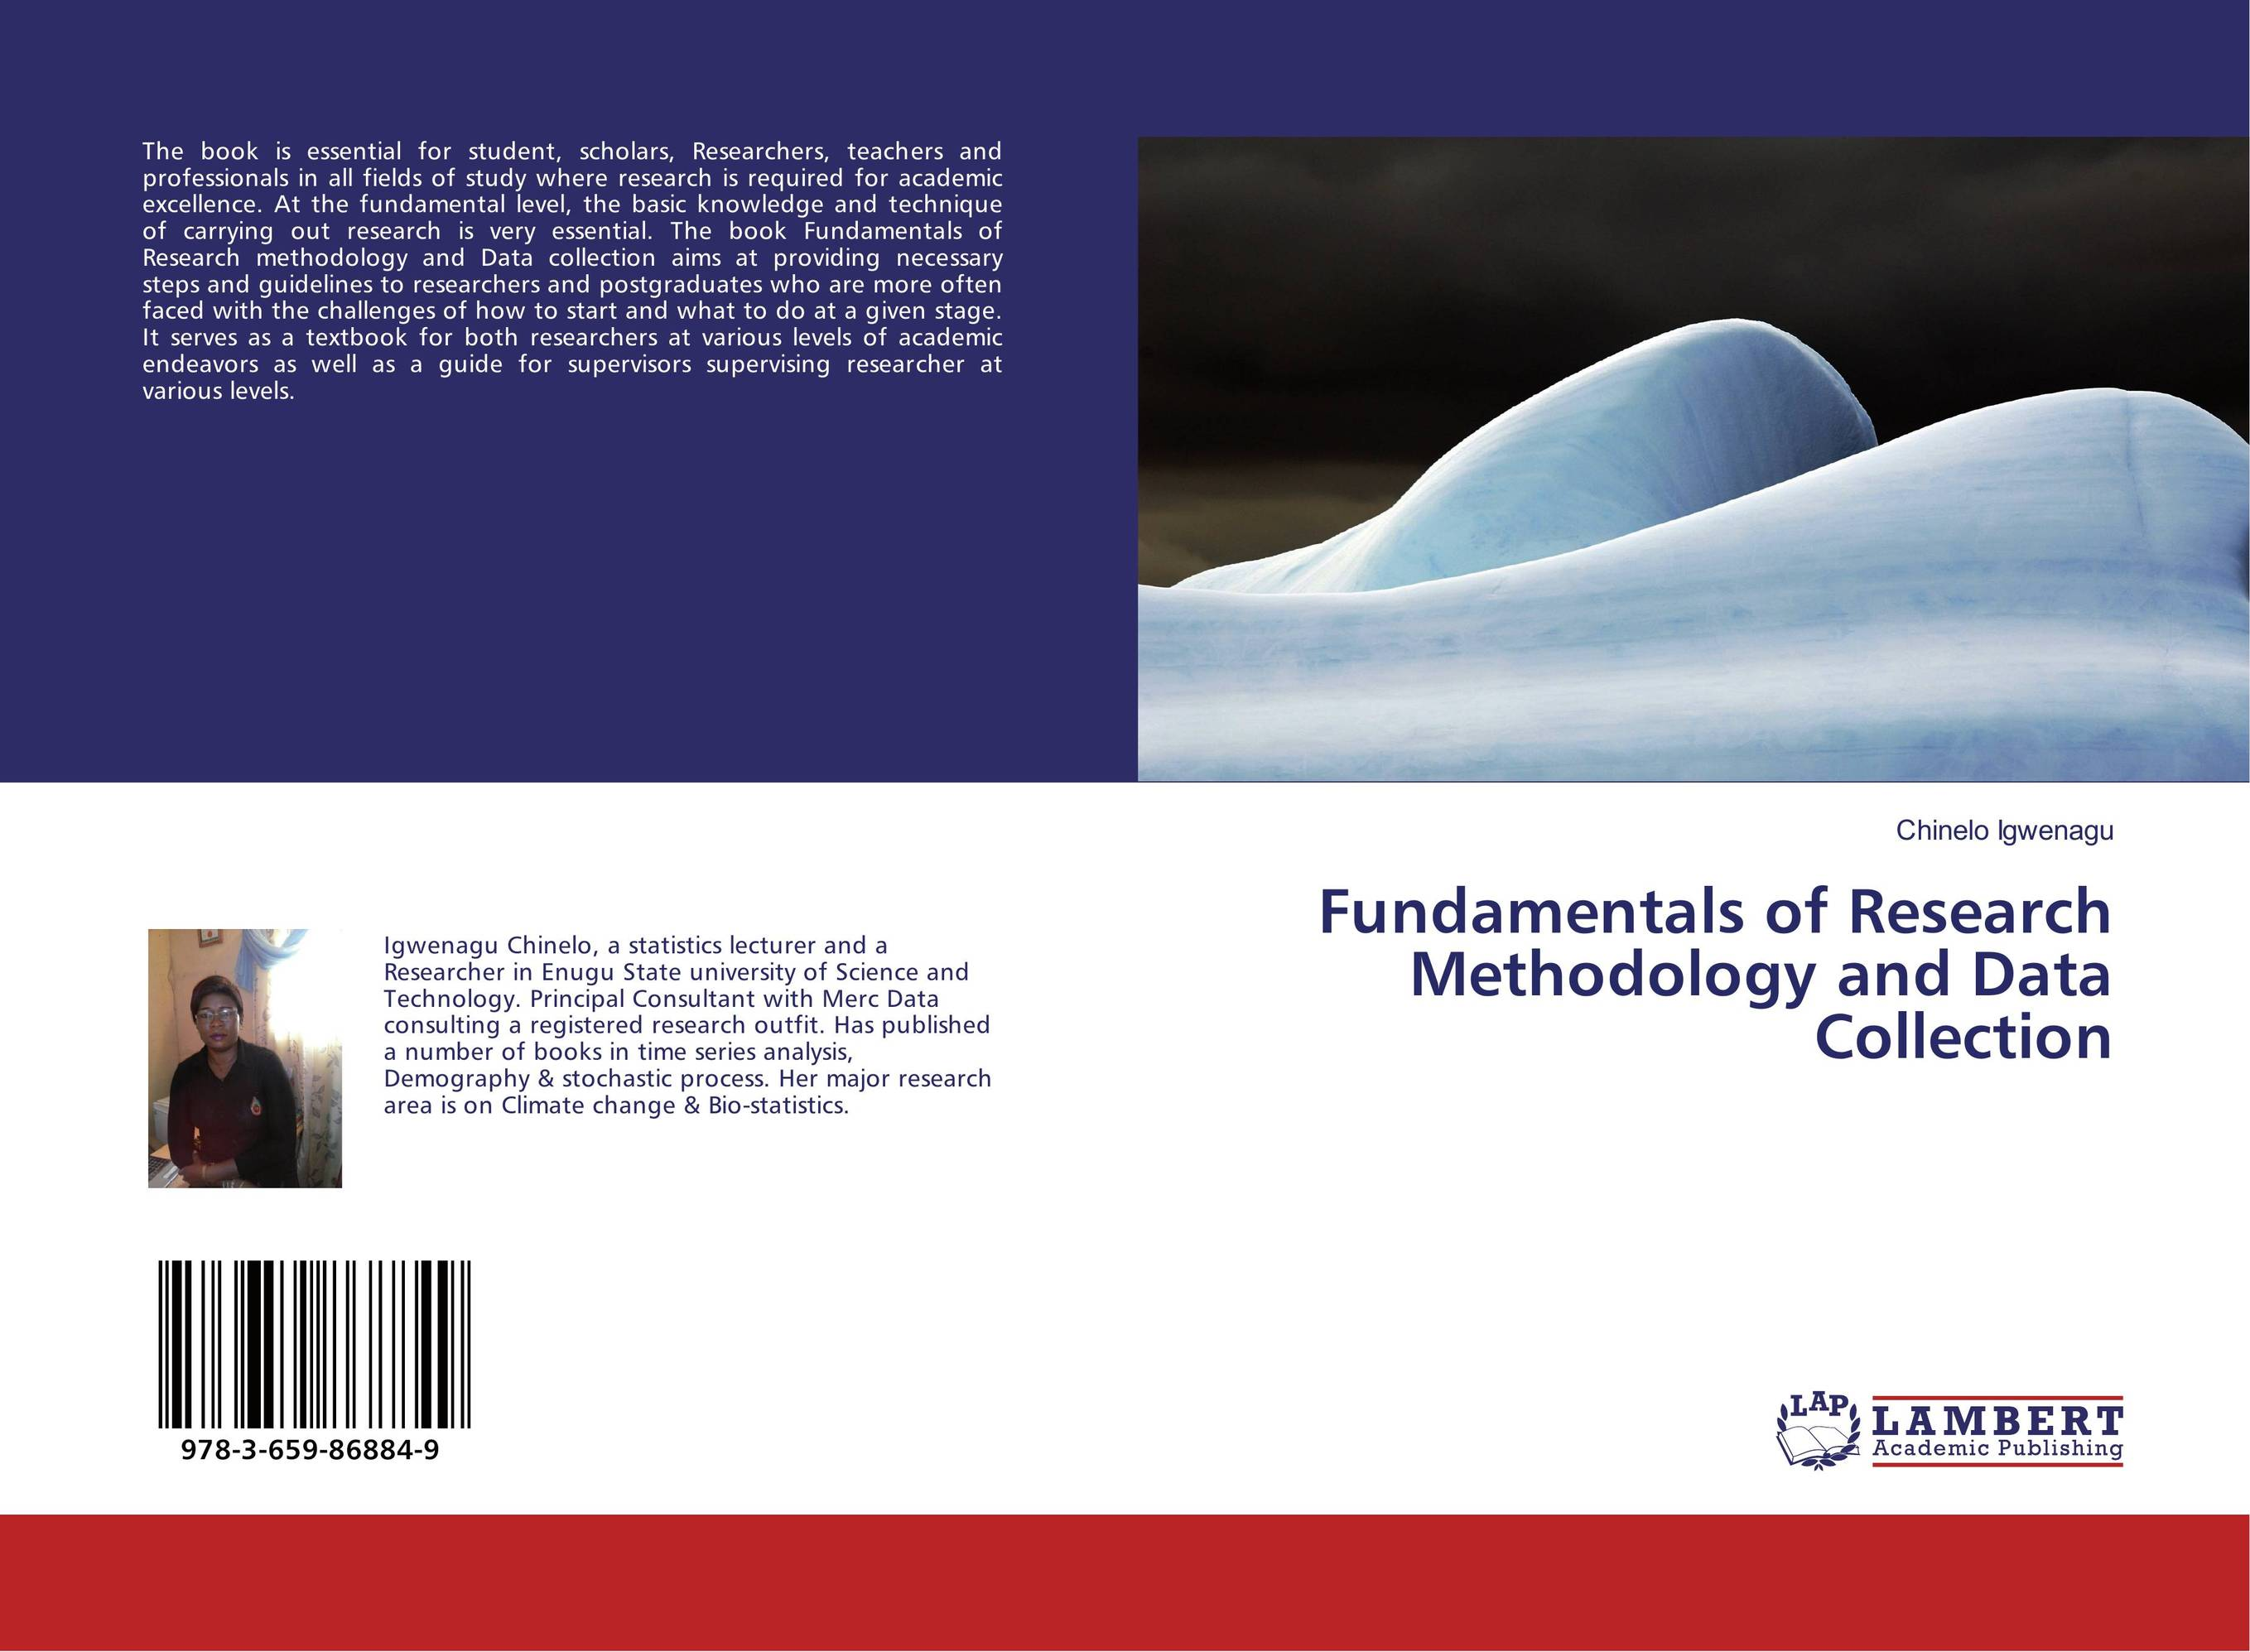 Fundamentals of Research Methodology and Data Collection